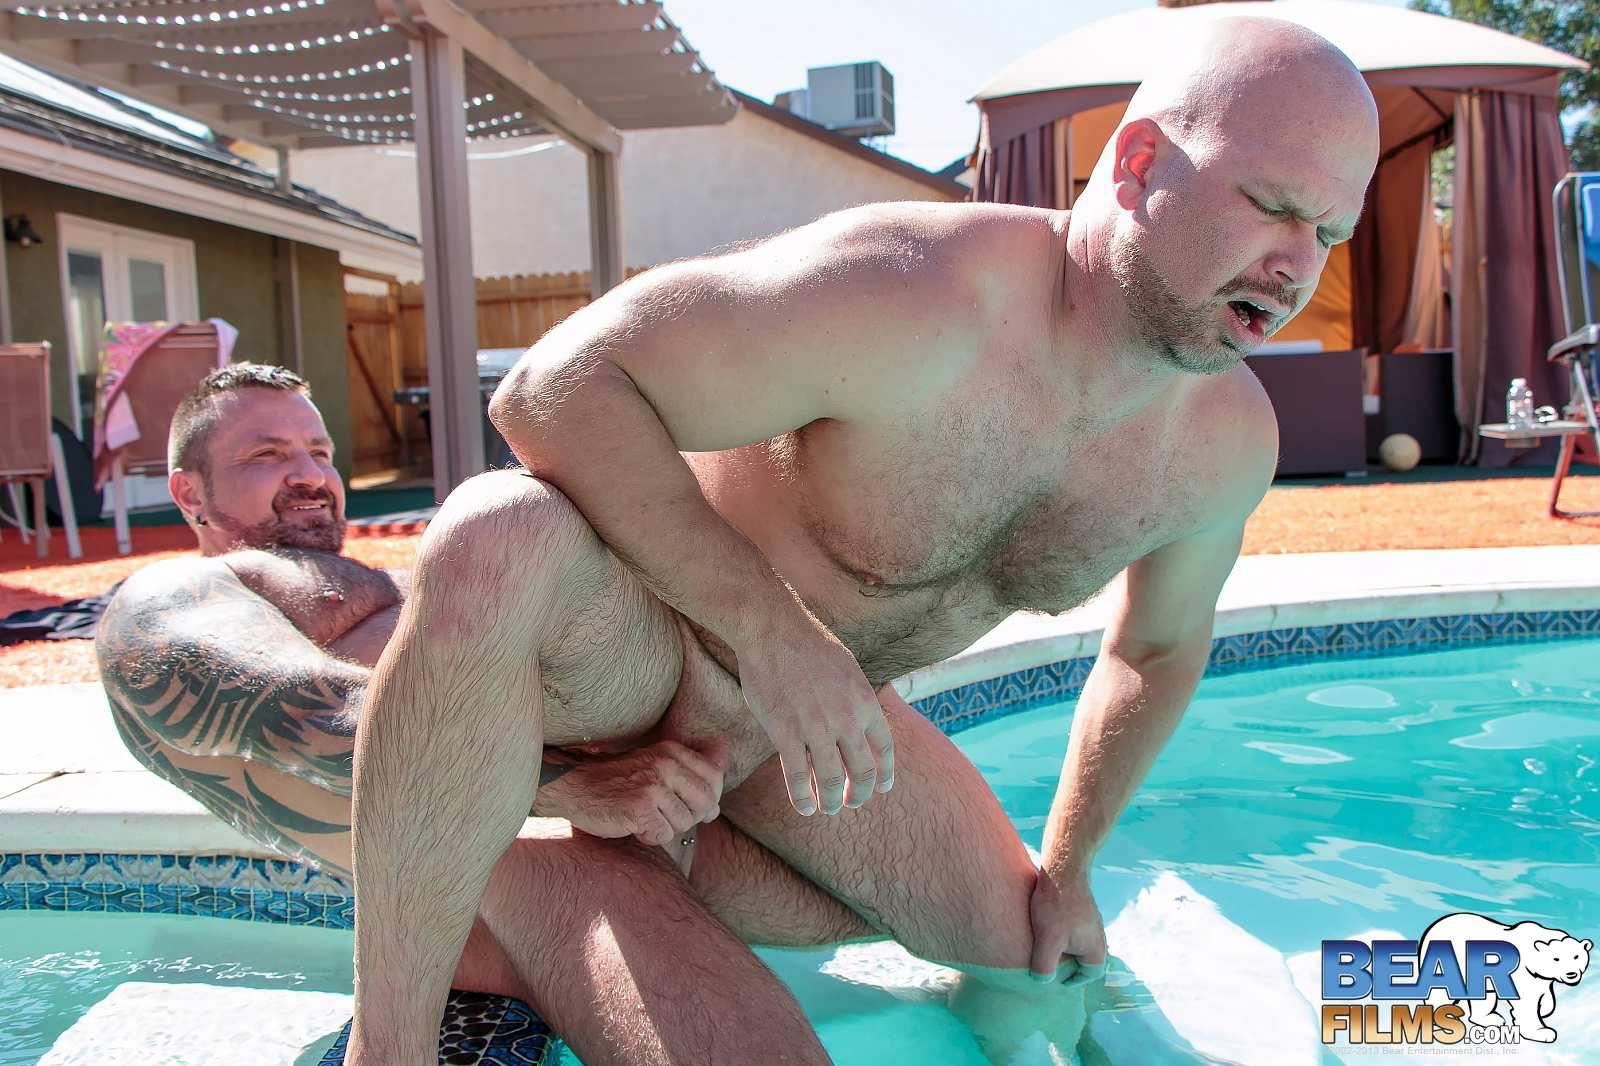 Bear-Films-Marc-Angelo-and-Wade-Cashen-Hairy-Muscle-Bears-Fucking-Bearback-Amateur-Gay-Porn-17 Hairy Muscle Bears Fucking Bareback At The Pool